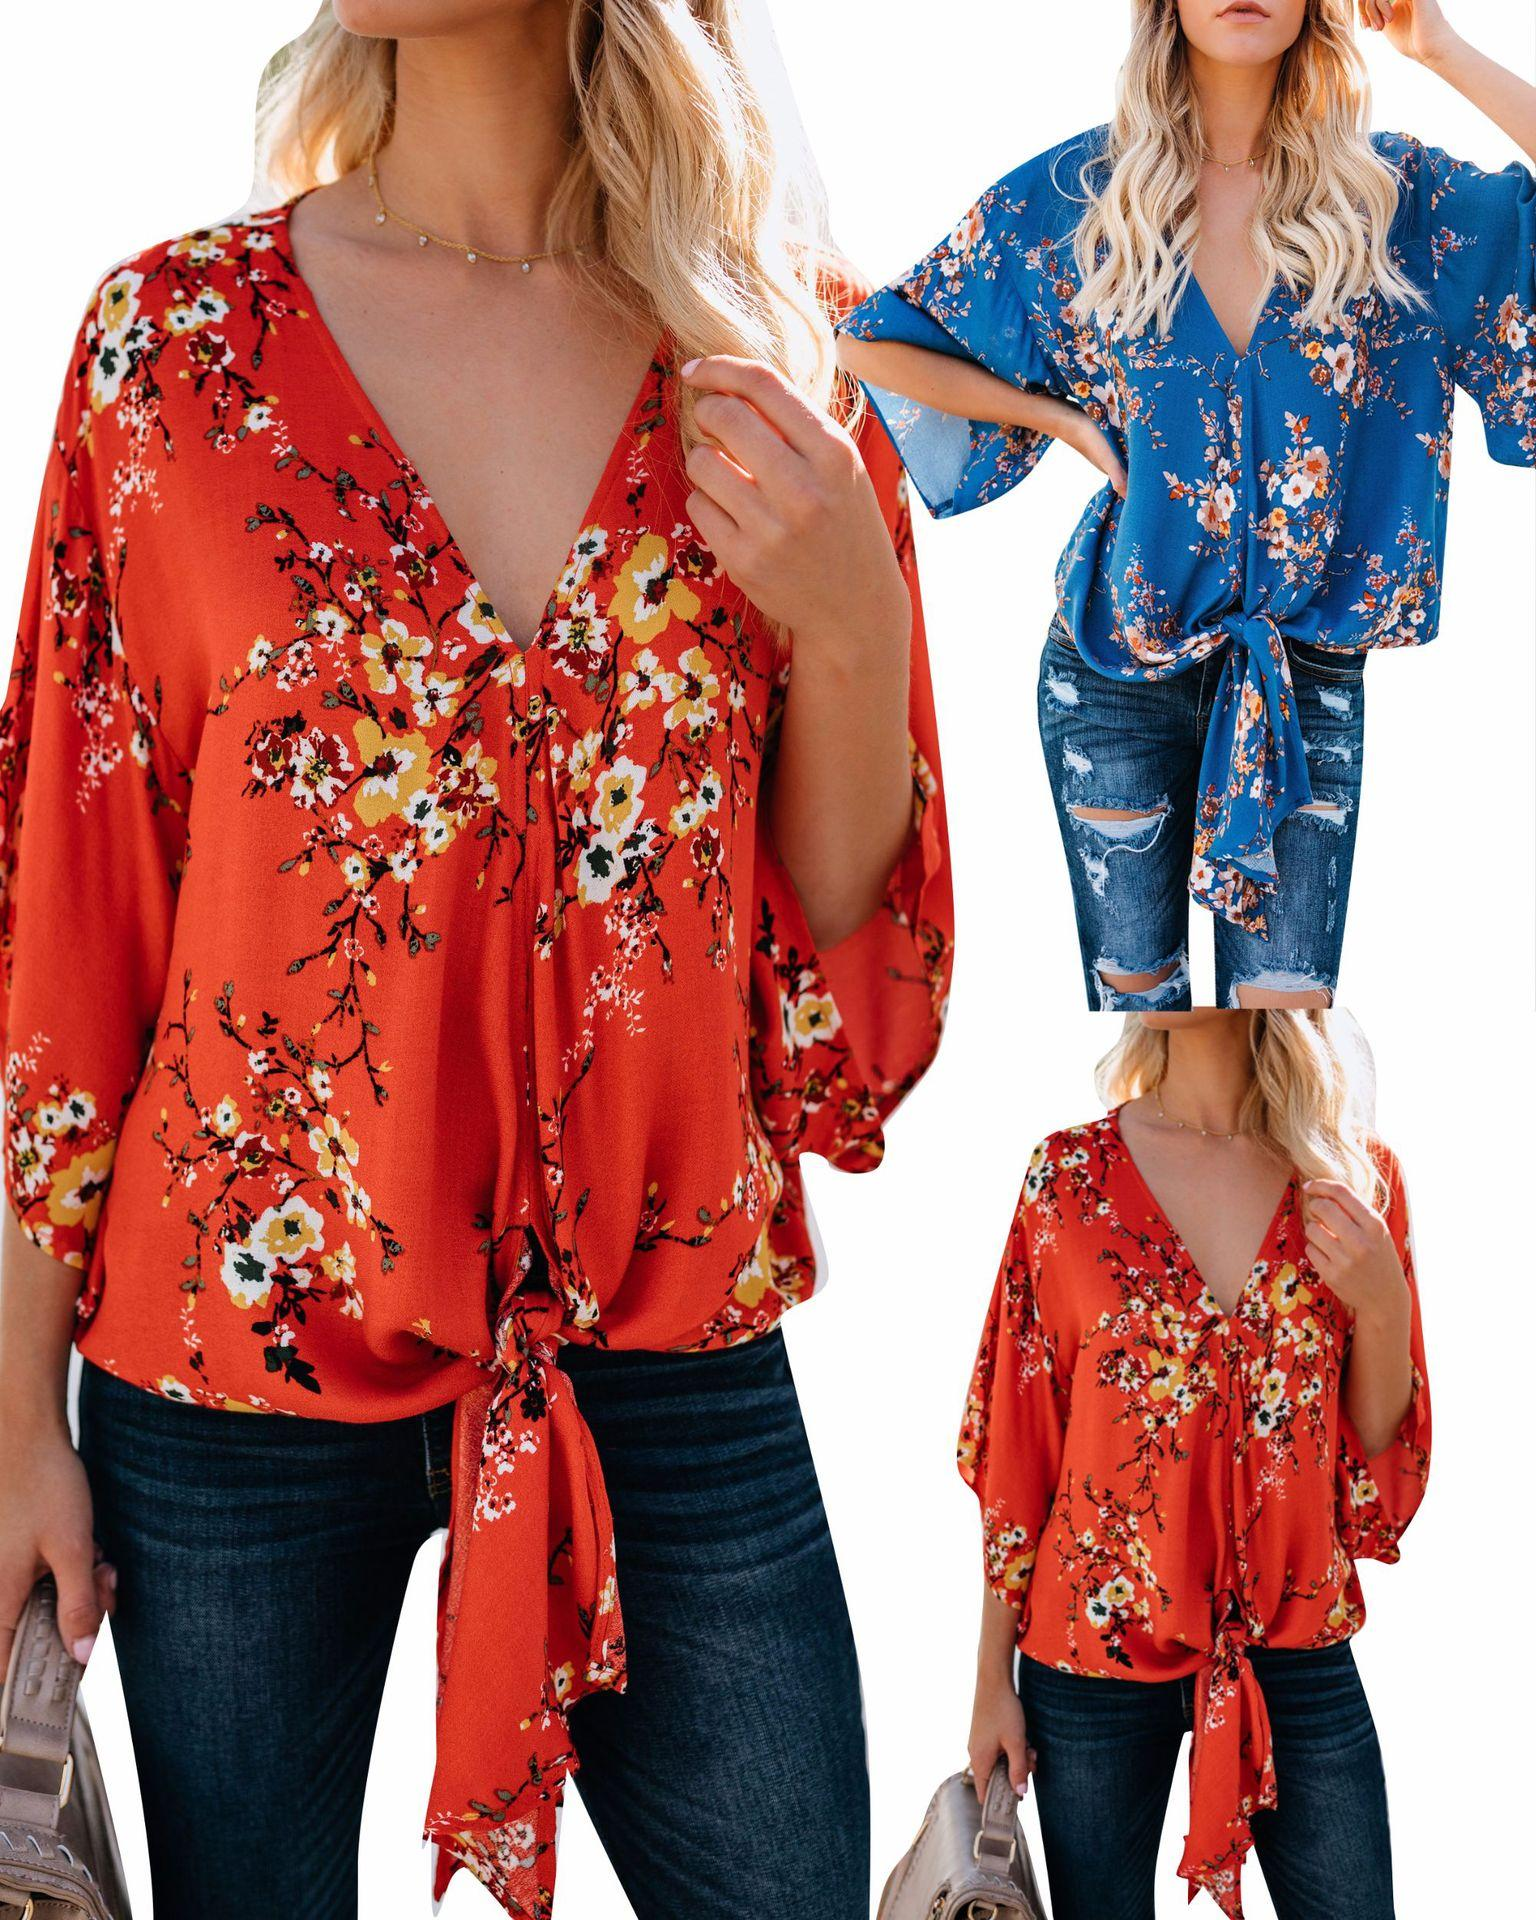 421222749ba000 Fashion Plus Size Chiffon Blouse Women Autumn Floral Shirt With Long Sleeve  Woman Sexy Shirts Clothes White Blouses Tops WG0034 Printing Tee Shirts  Cool ...